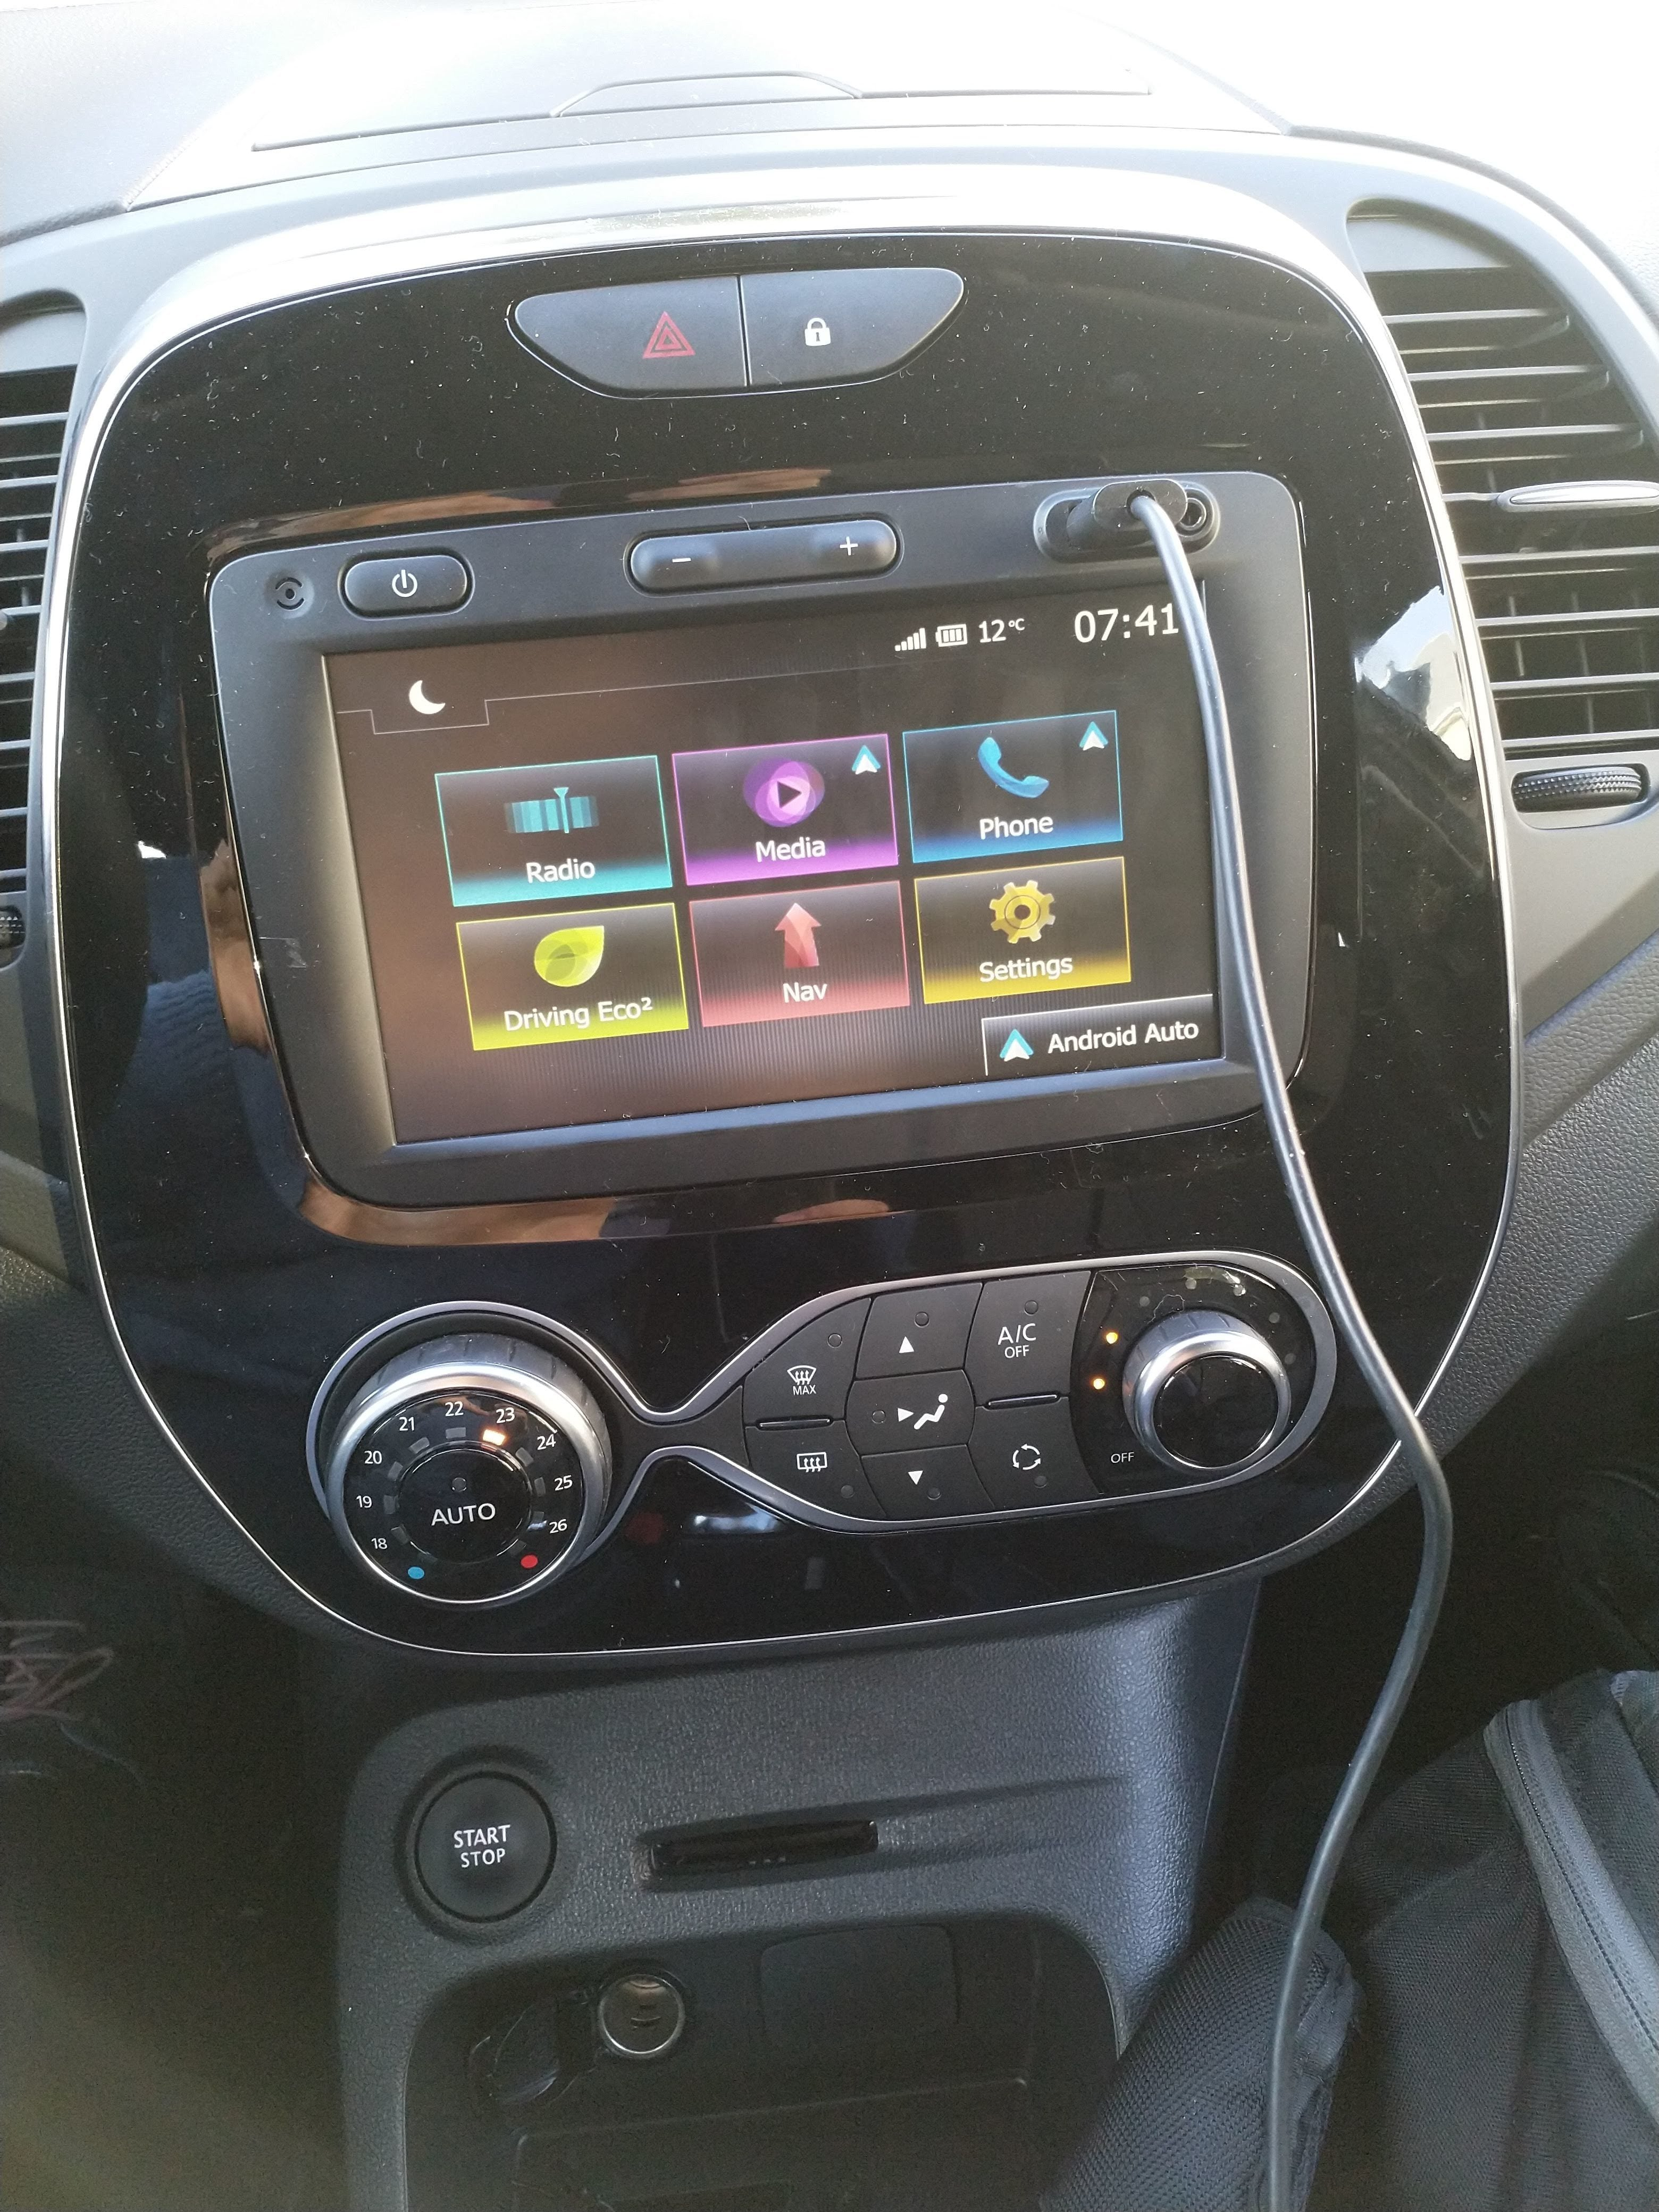 Review Medianav Evolution v2 with Android Auto and Carplay